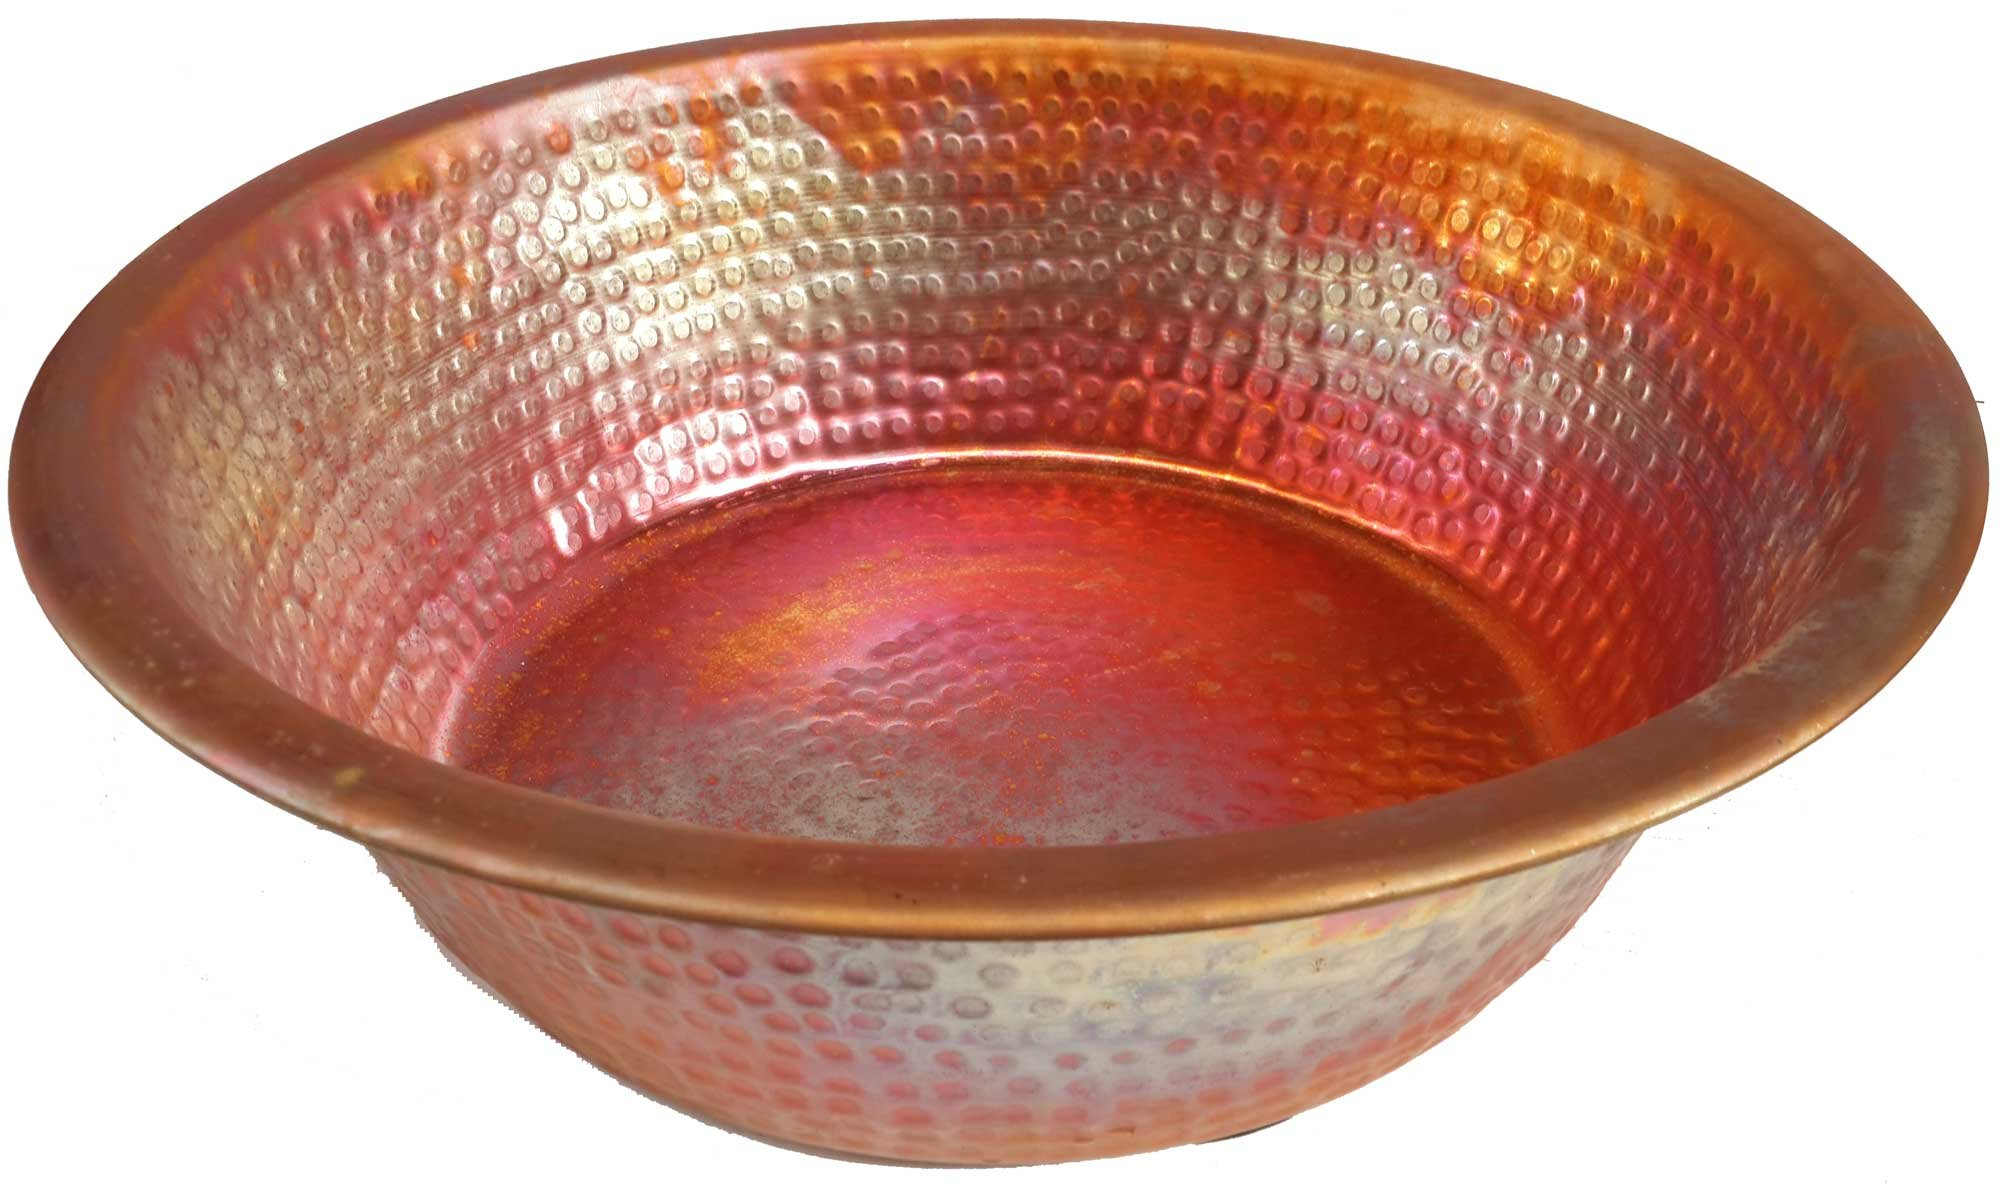 Egypt gift shops HANDMADE Copper Foot Remedy Reflexology Healing Therapy Massage Pedicure Athlete Relaxing Basin